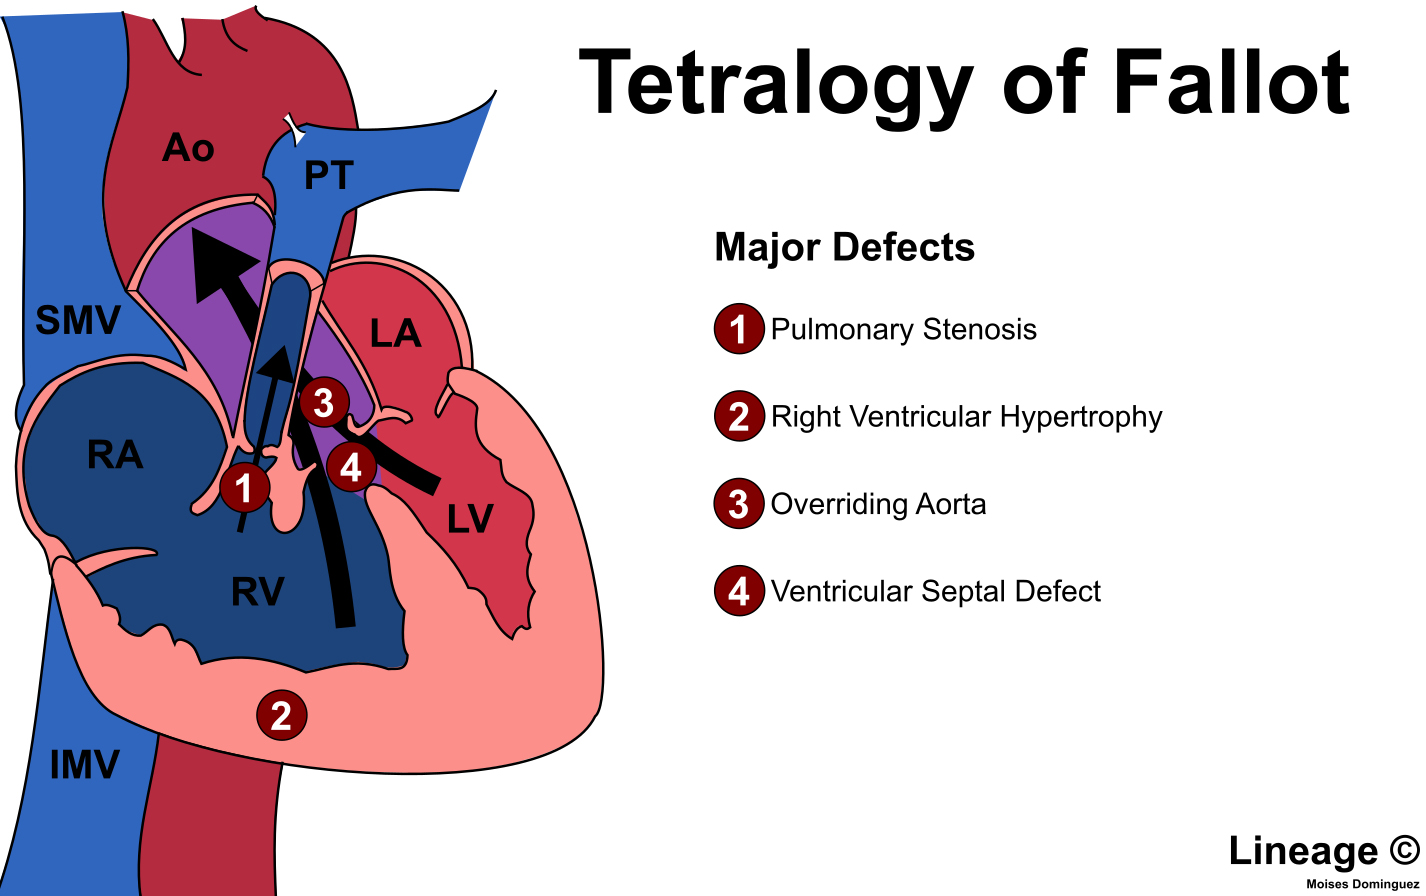 tetralogy of fallot Start studying exam 9 ob tetralogy of fallot - s&s - nursing interventions learn vocabulary, terms, and more with flashcards, games, and other study tools.